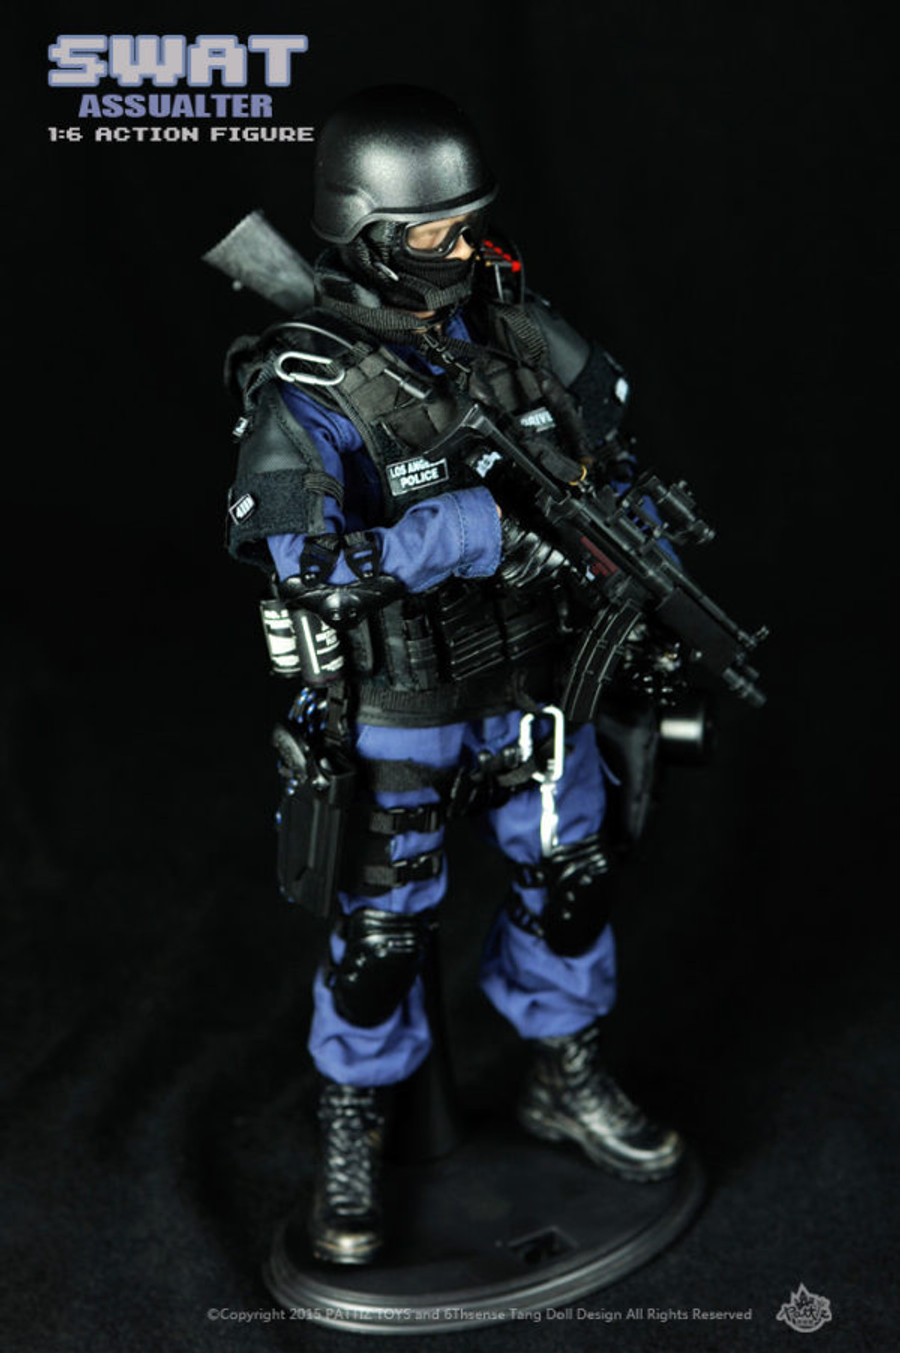 KADHOBBY - SWAT Assaulter